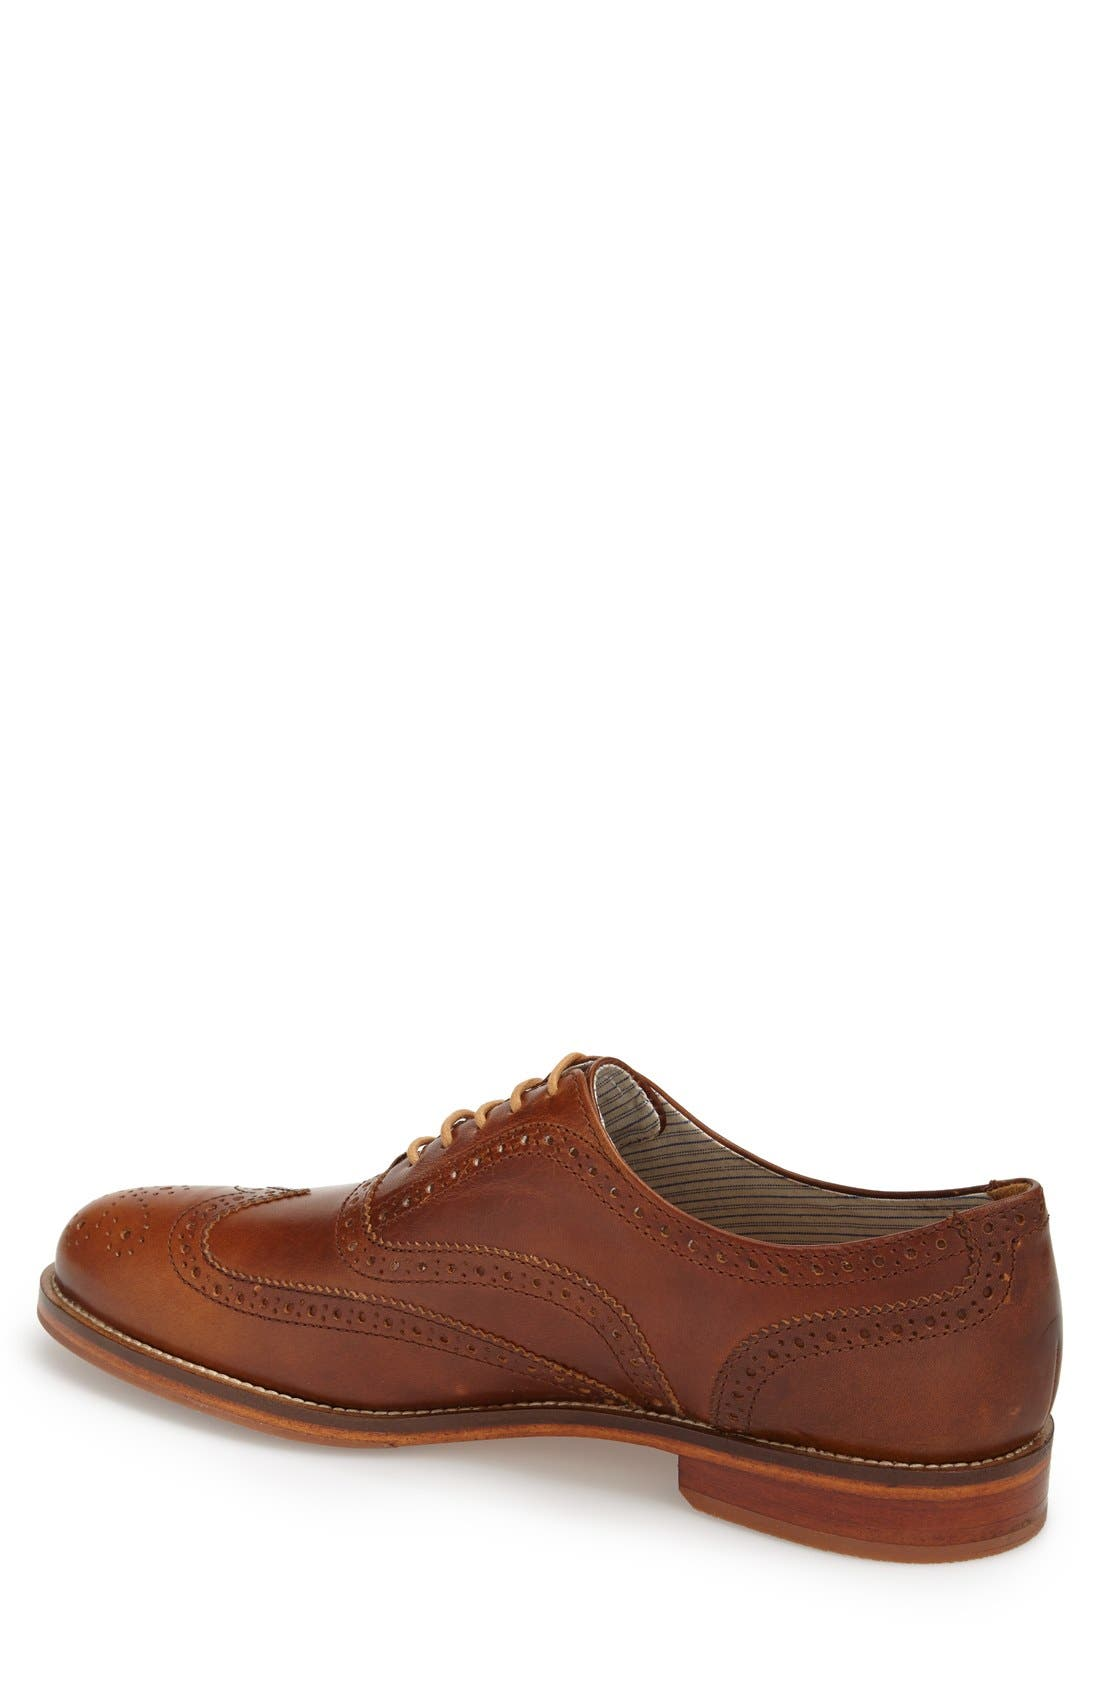 'Charlie Plus' Wingtip Oxford,                             Alternate thumbnail 2, color,                             BRASS LEATHER